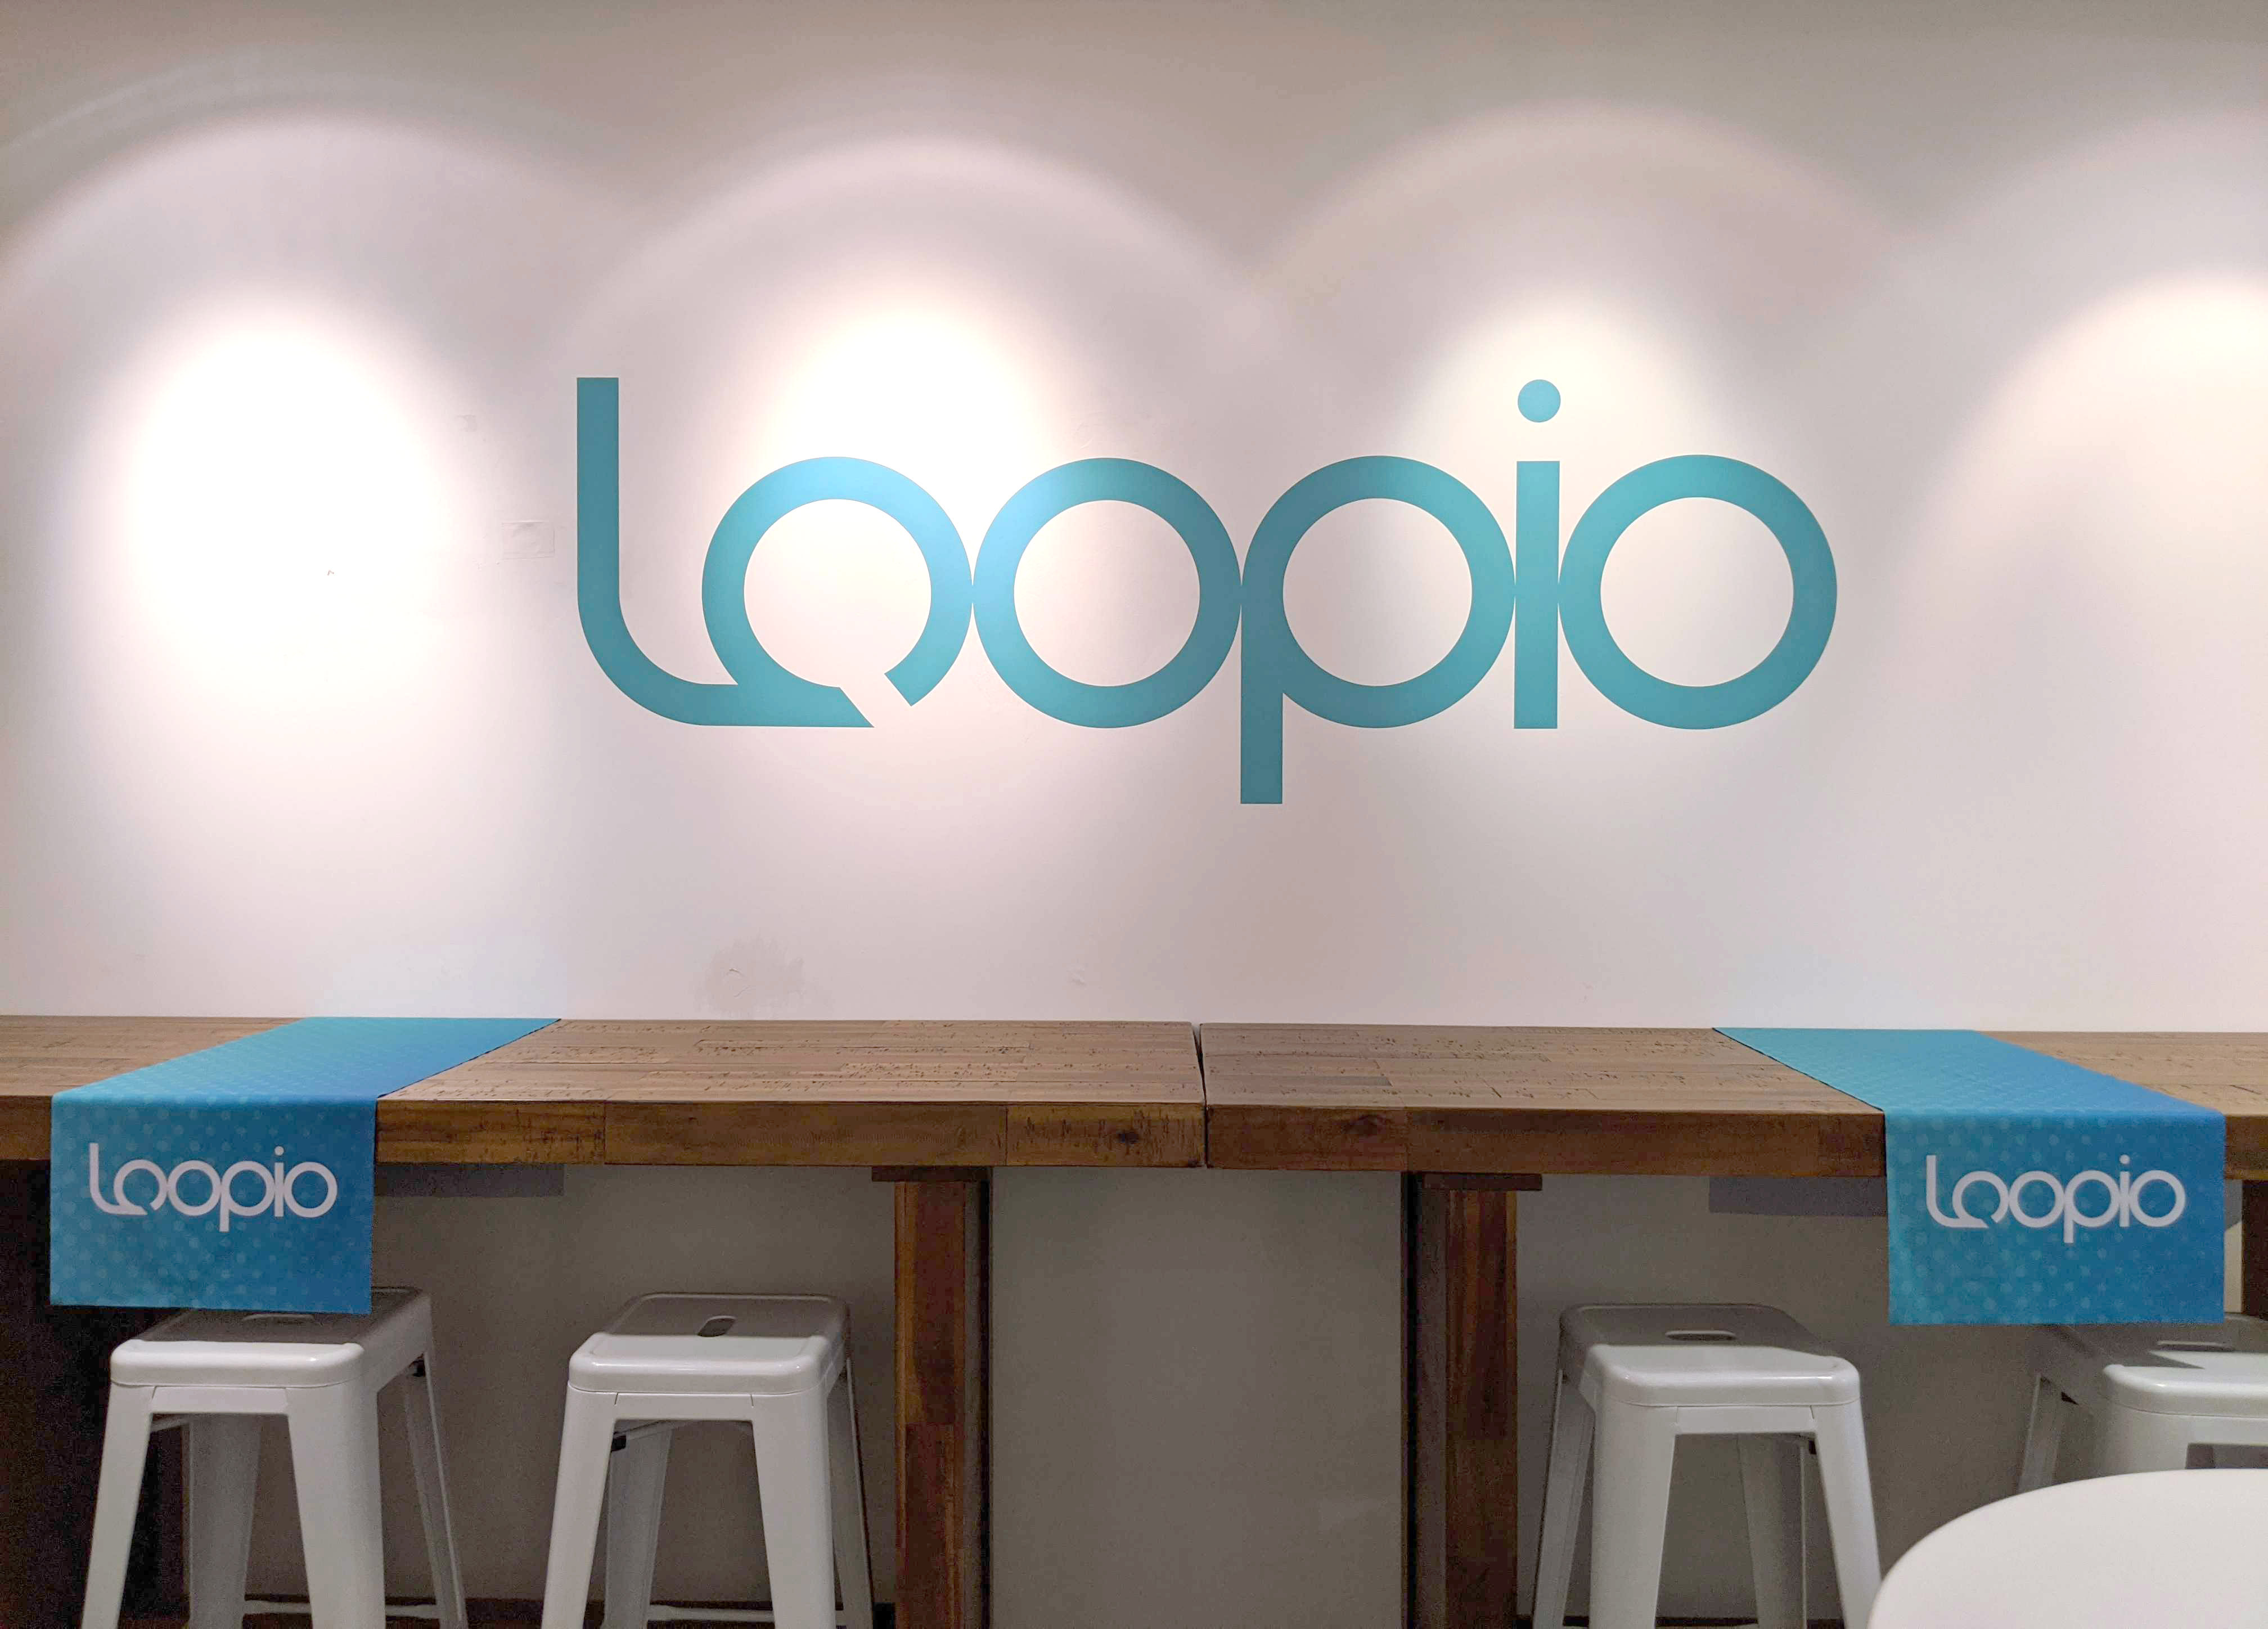 White wall with teal vinyl cling of Loopio logo